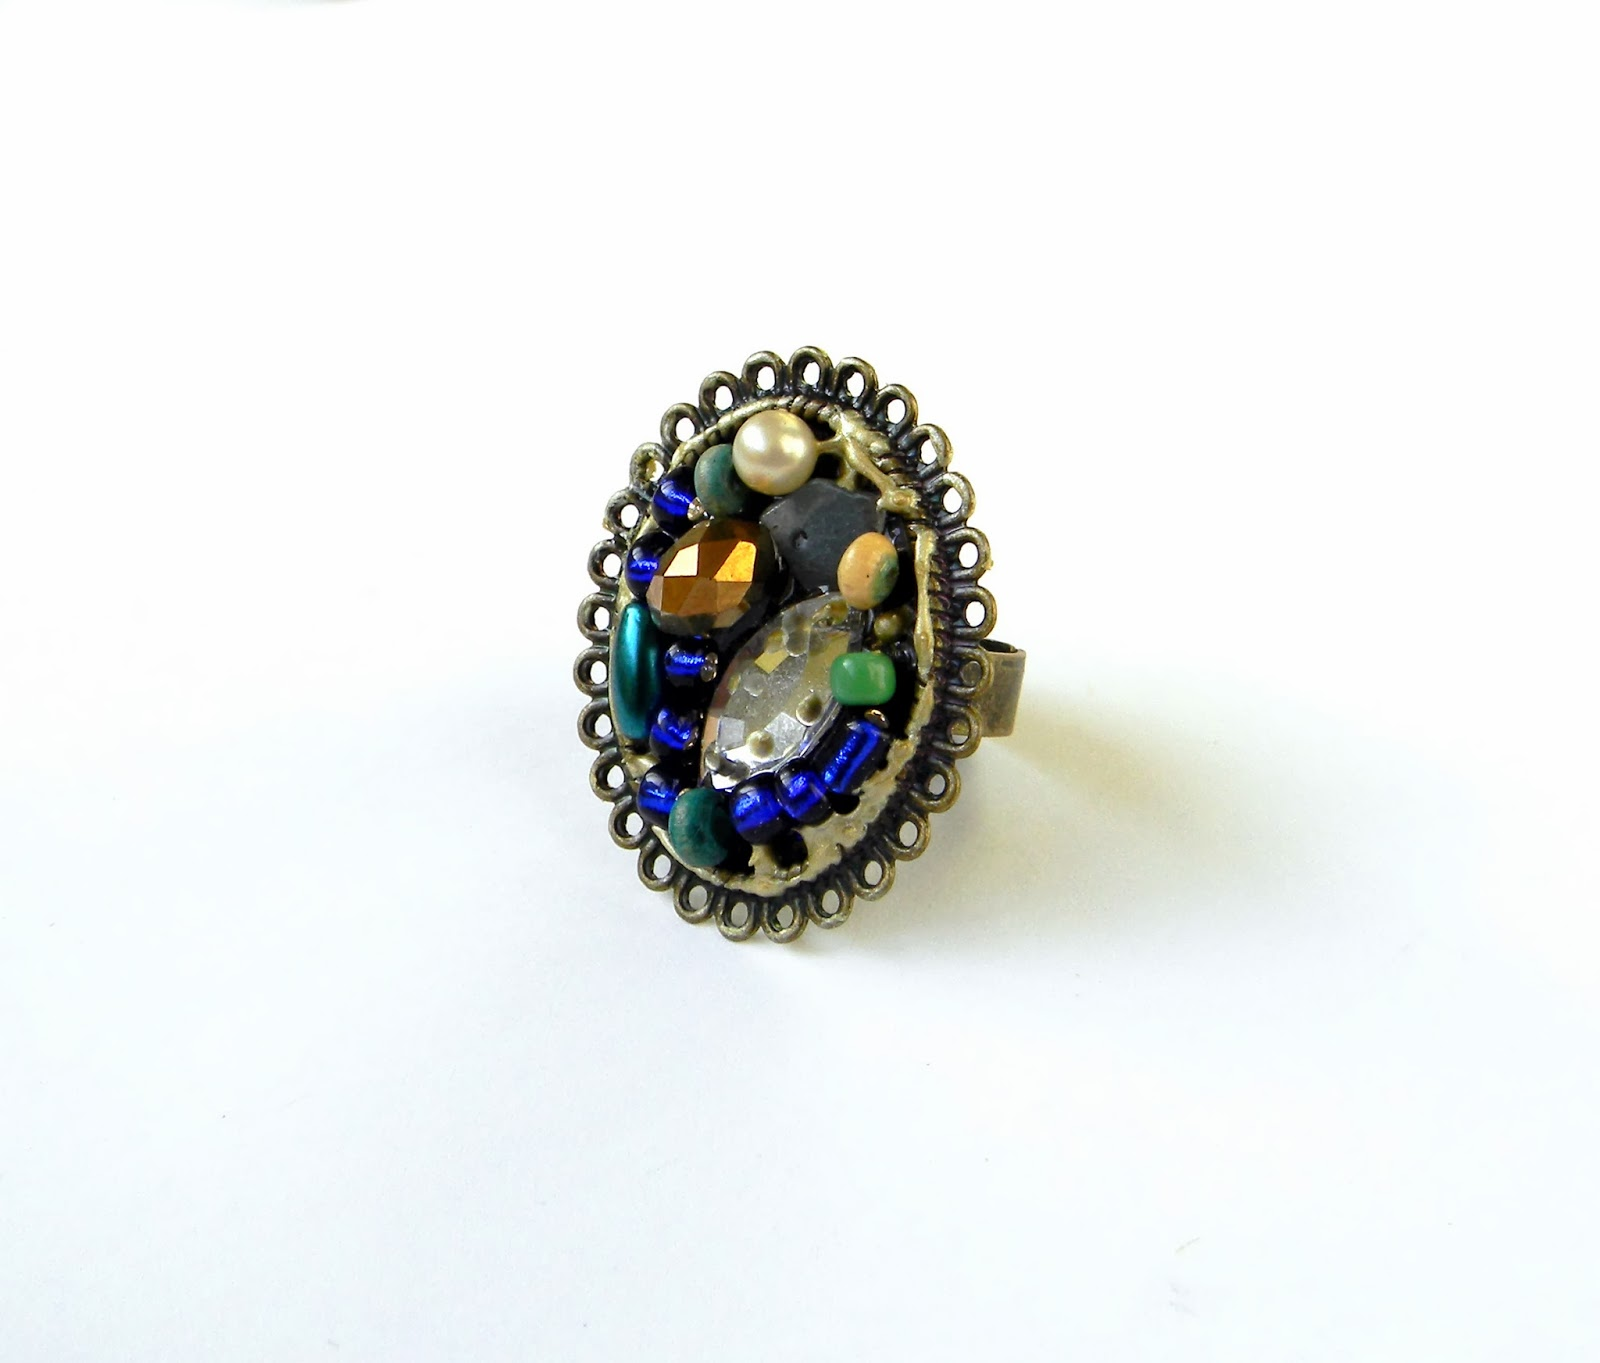 Beaded Collage Ring Bronze Filigree Cabochon with Colorful Beads Adjustable Ring M size